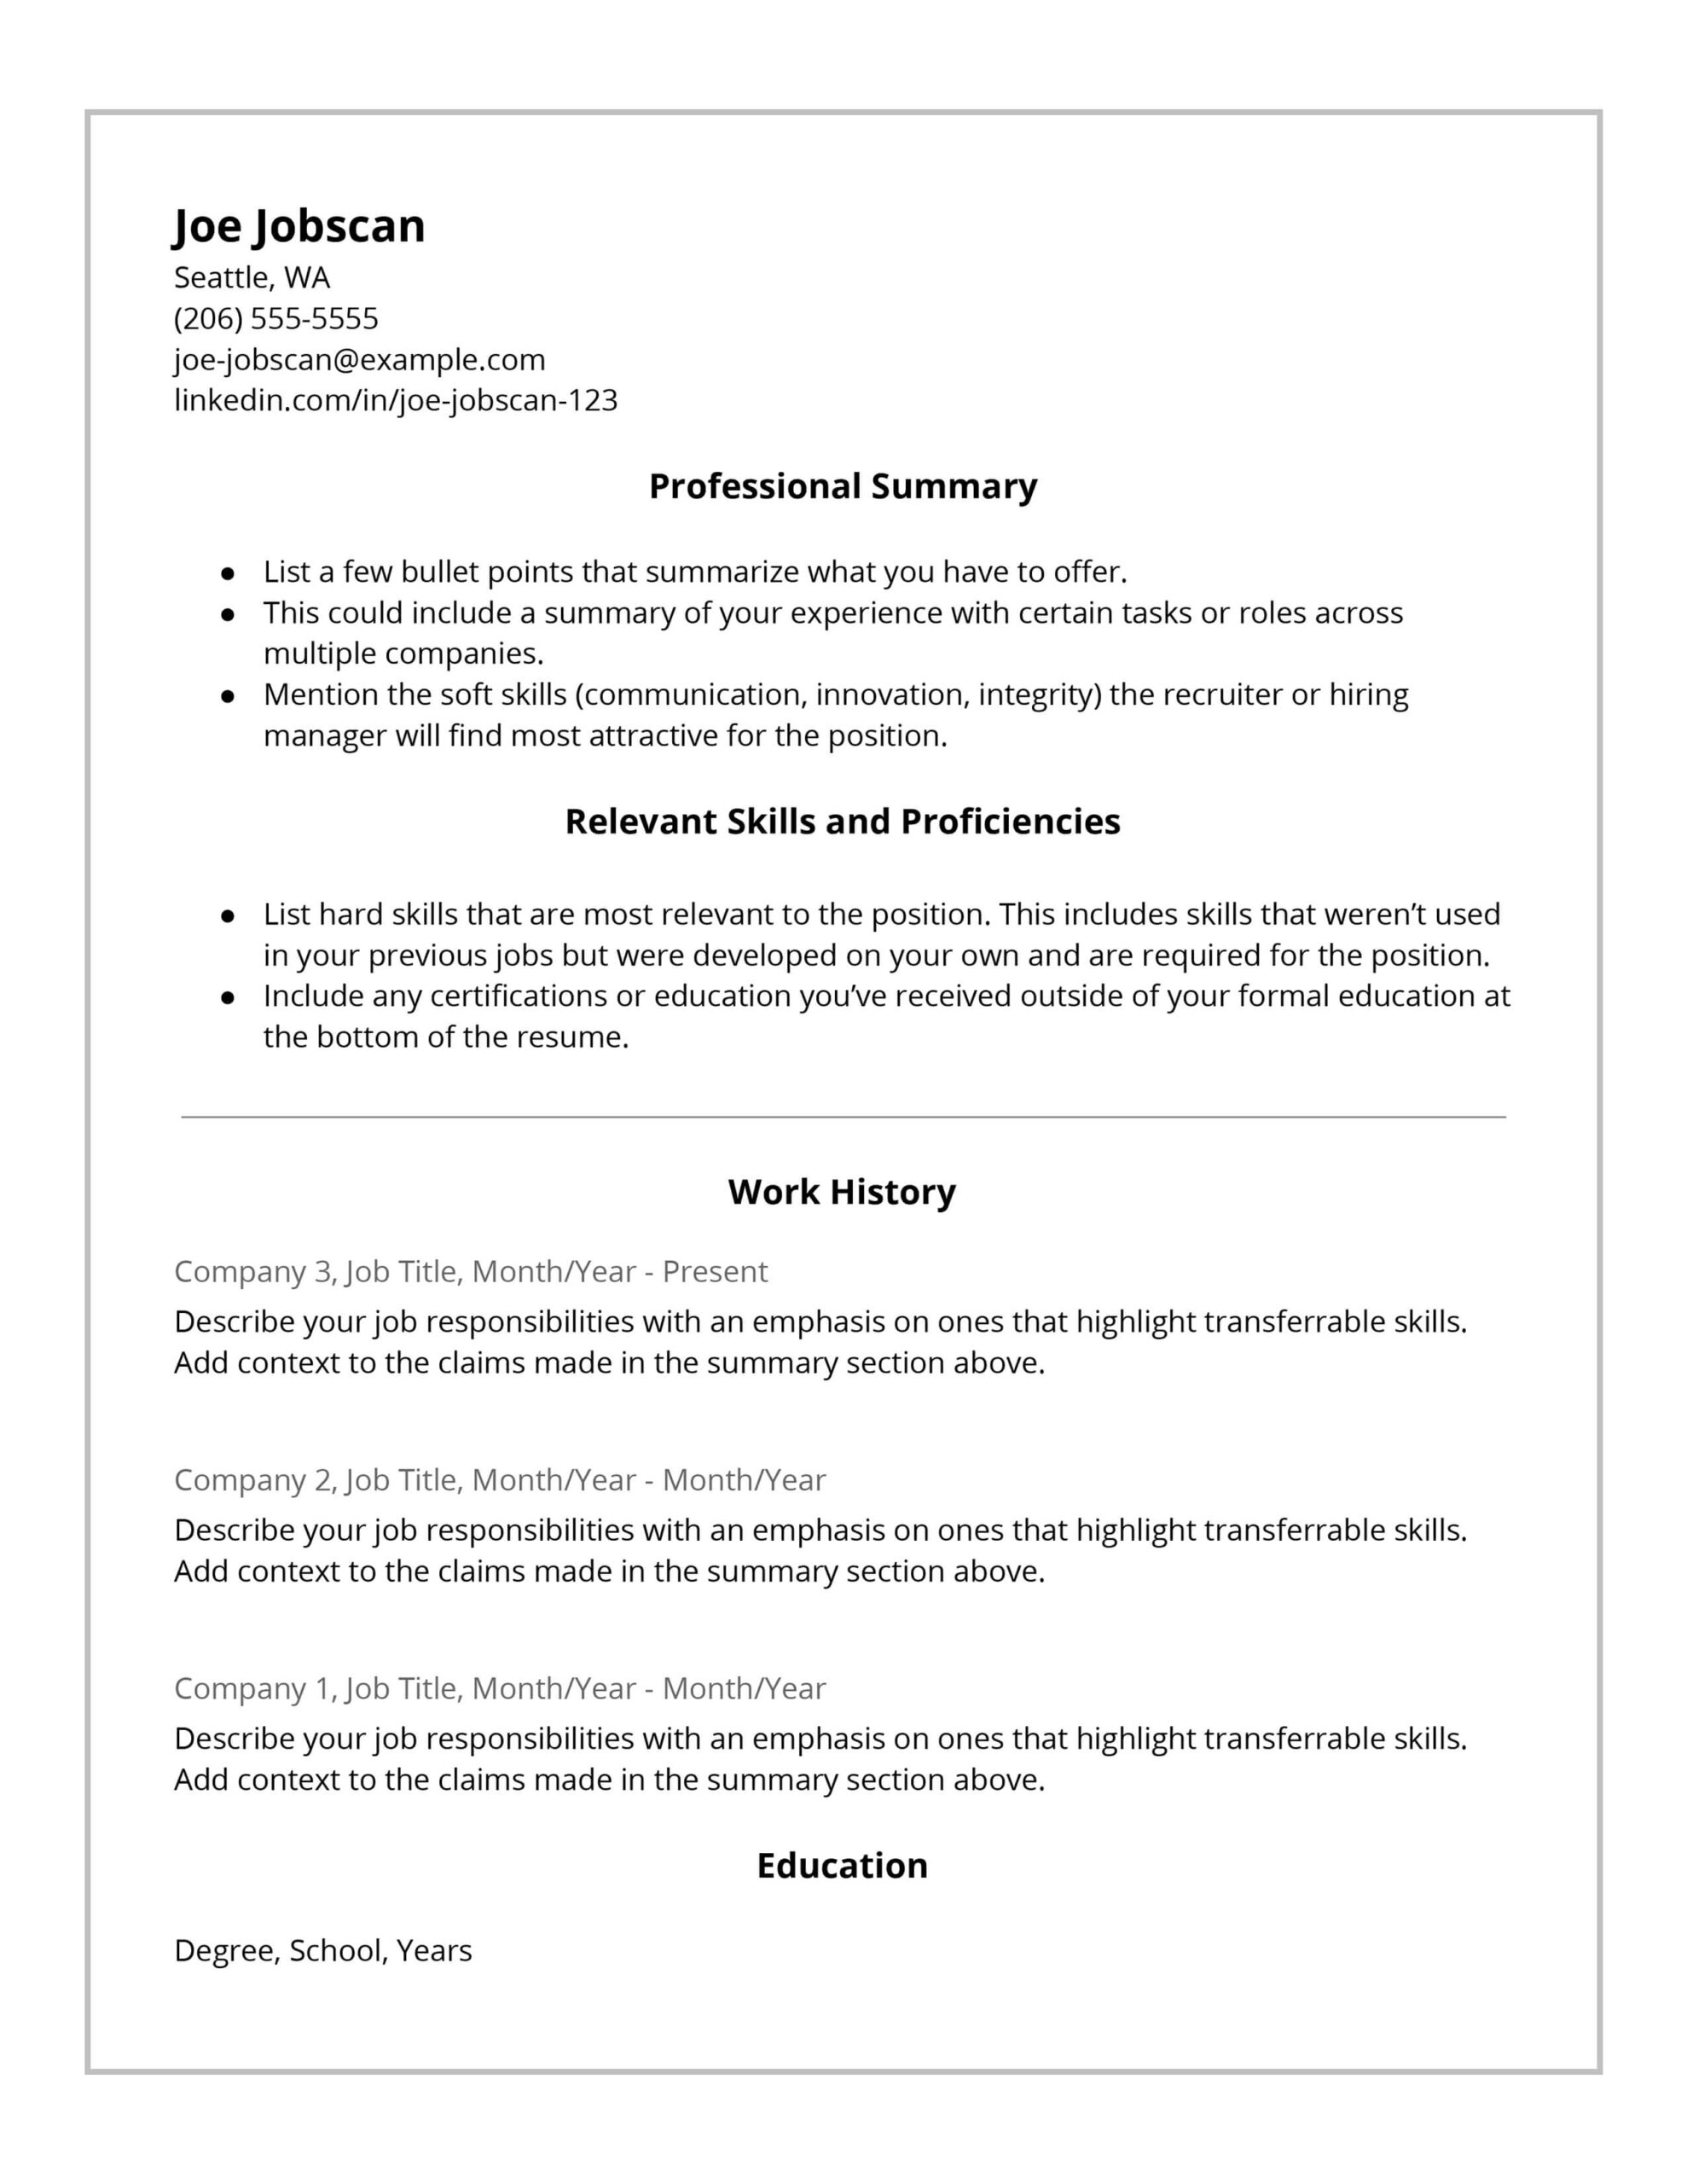 recruiters hate the functional resume format here vs chronological hybrid template strong Resume Functional Vs Chronological Resume